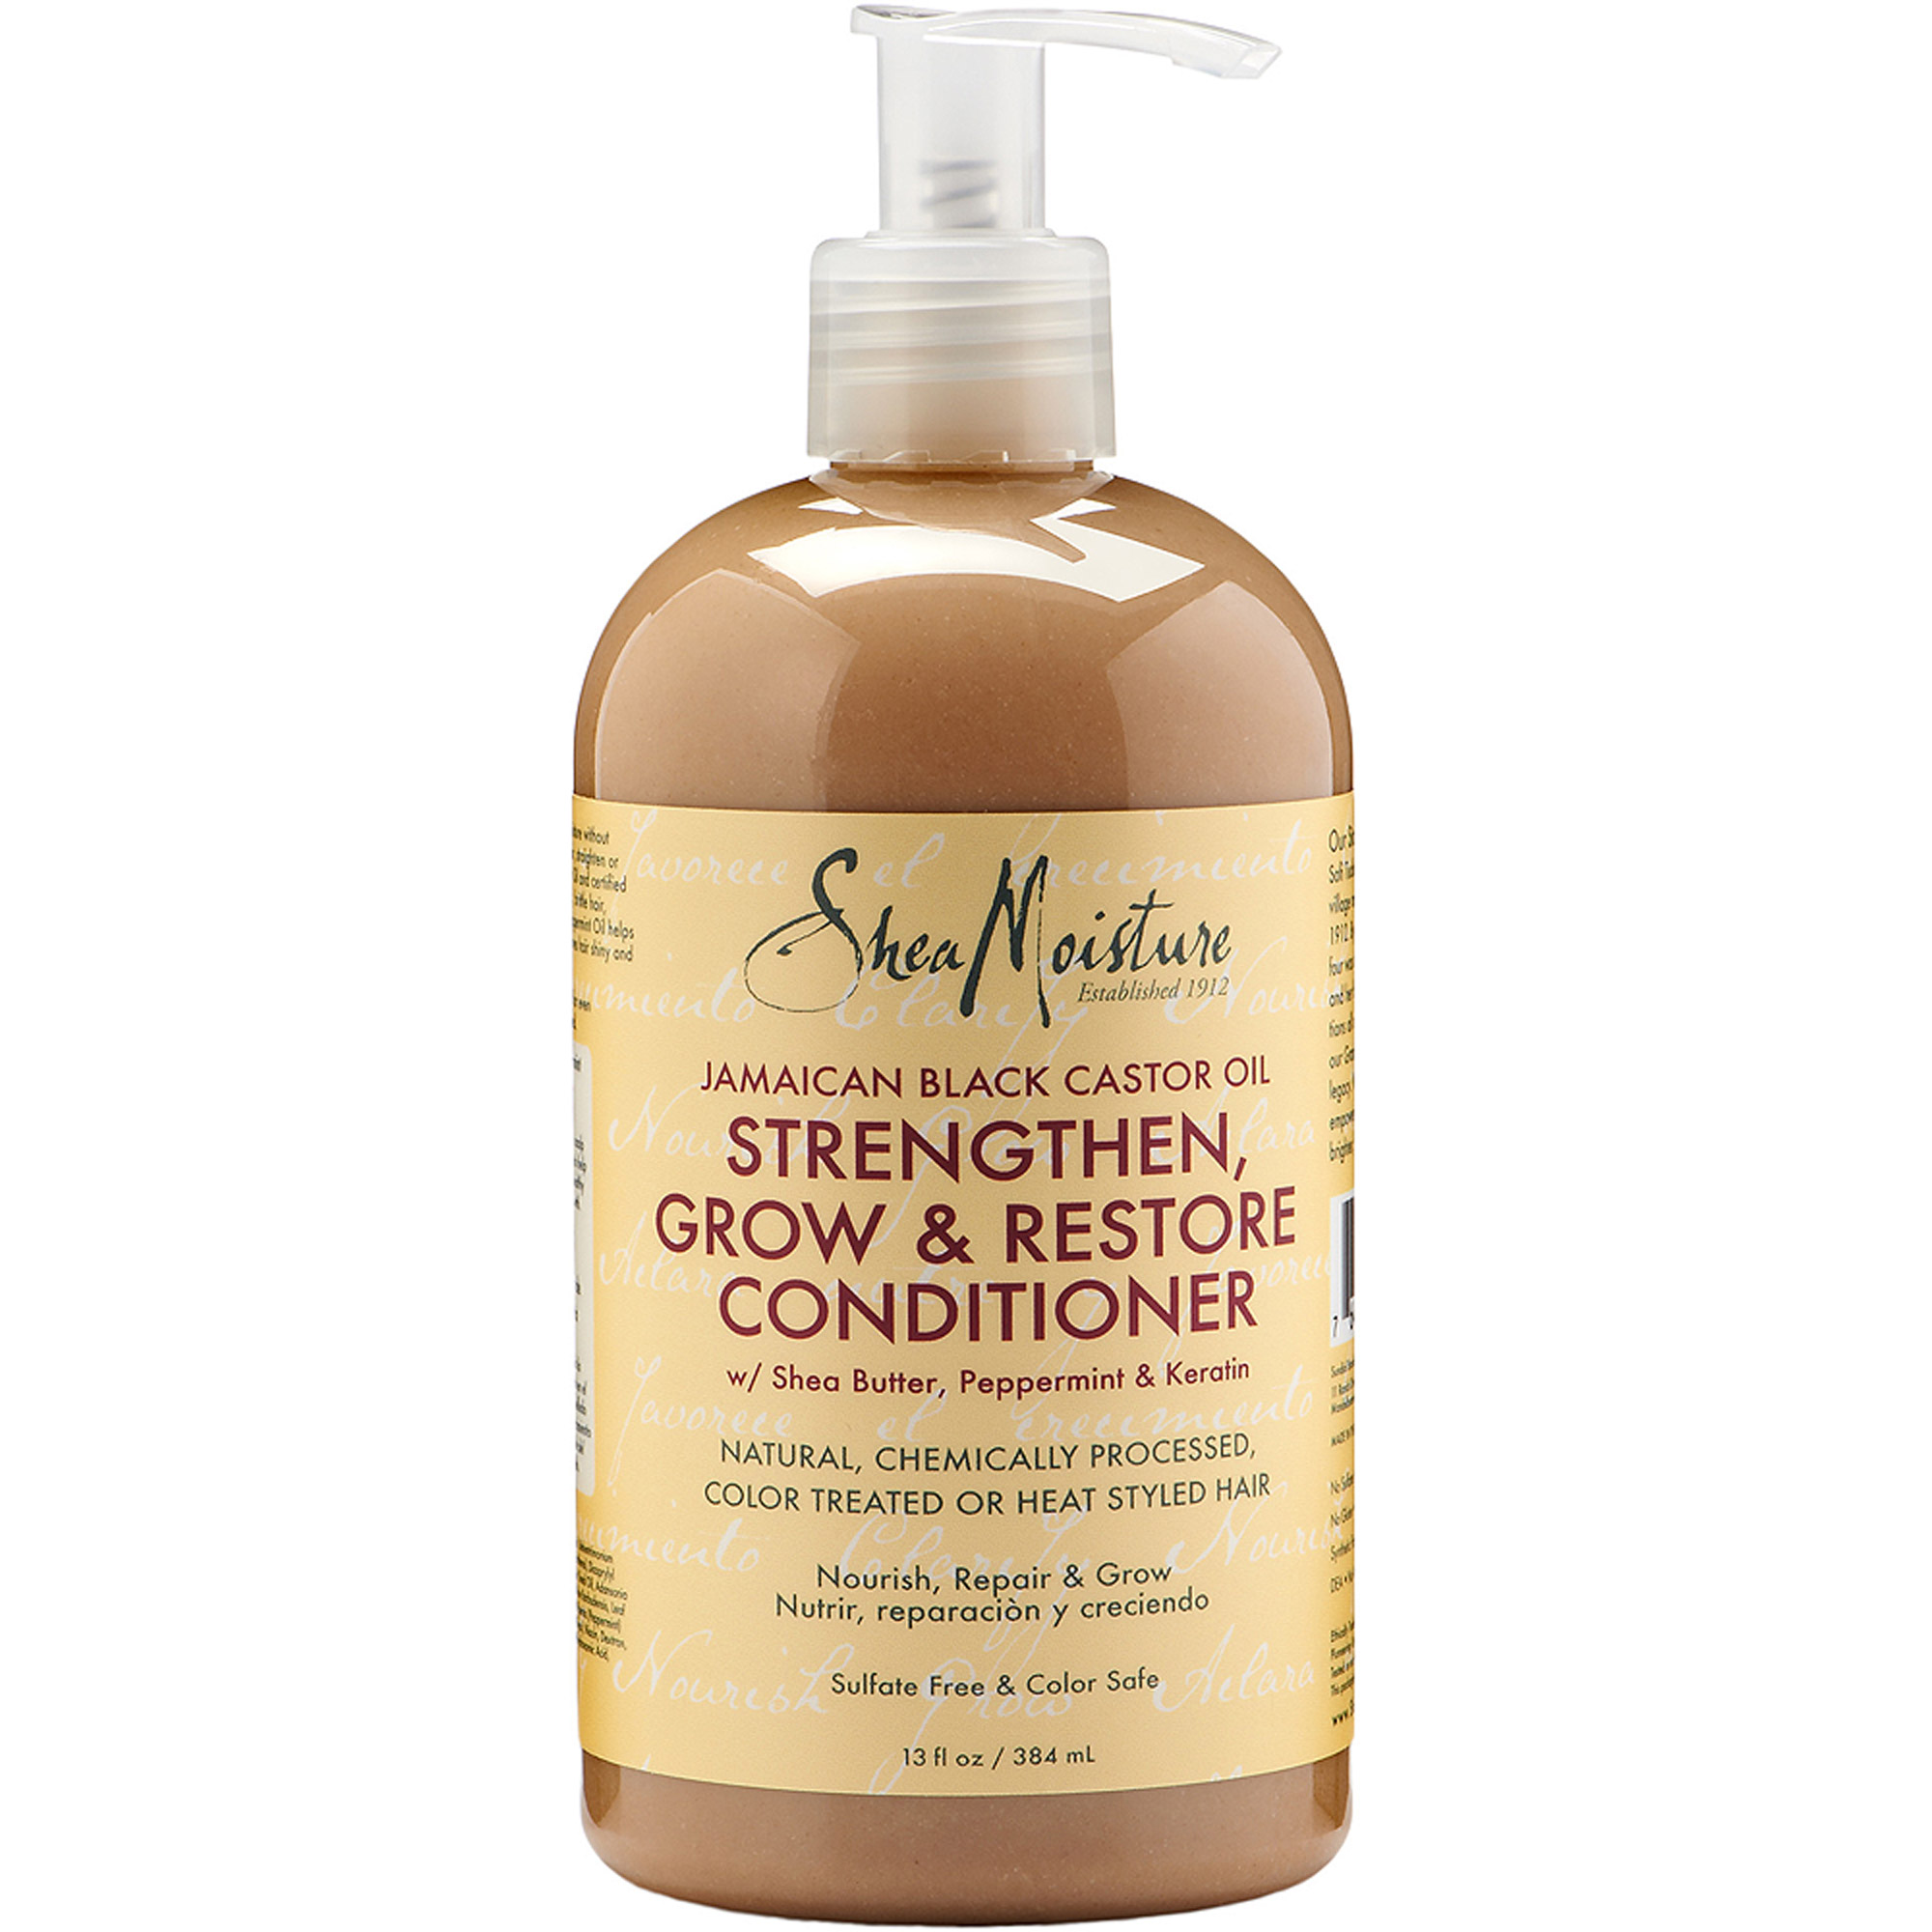 SheaMoisture Jamaican Black Castor Oil Strengthen, Grow & Restore Conditioner, 13 fl oz